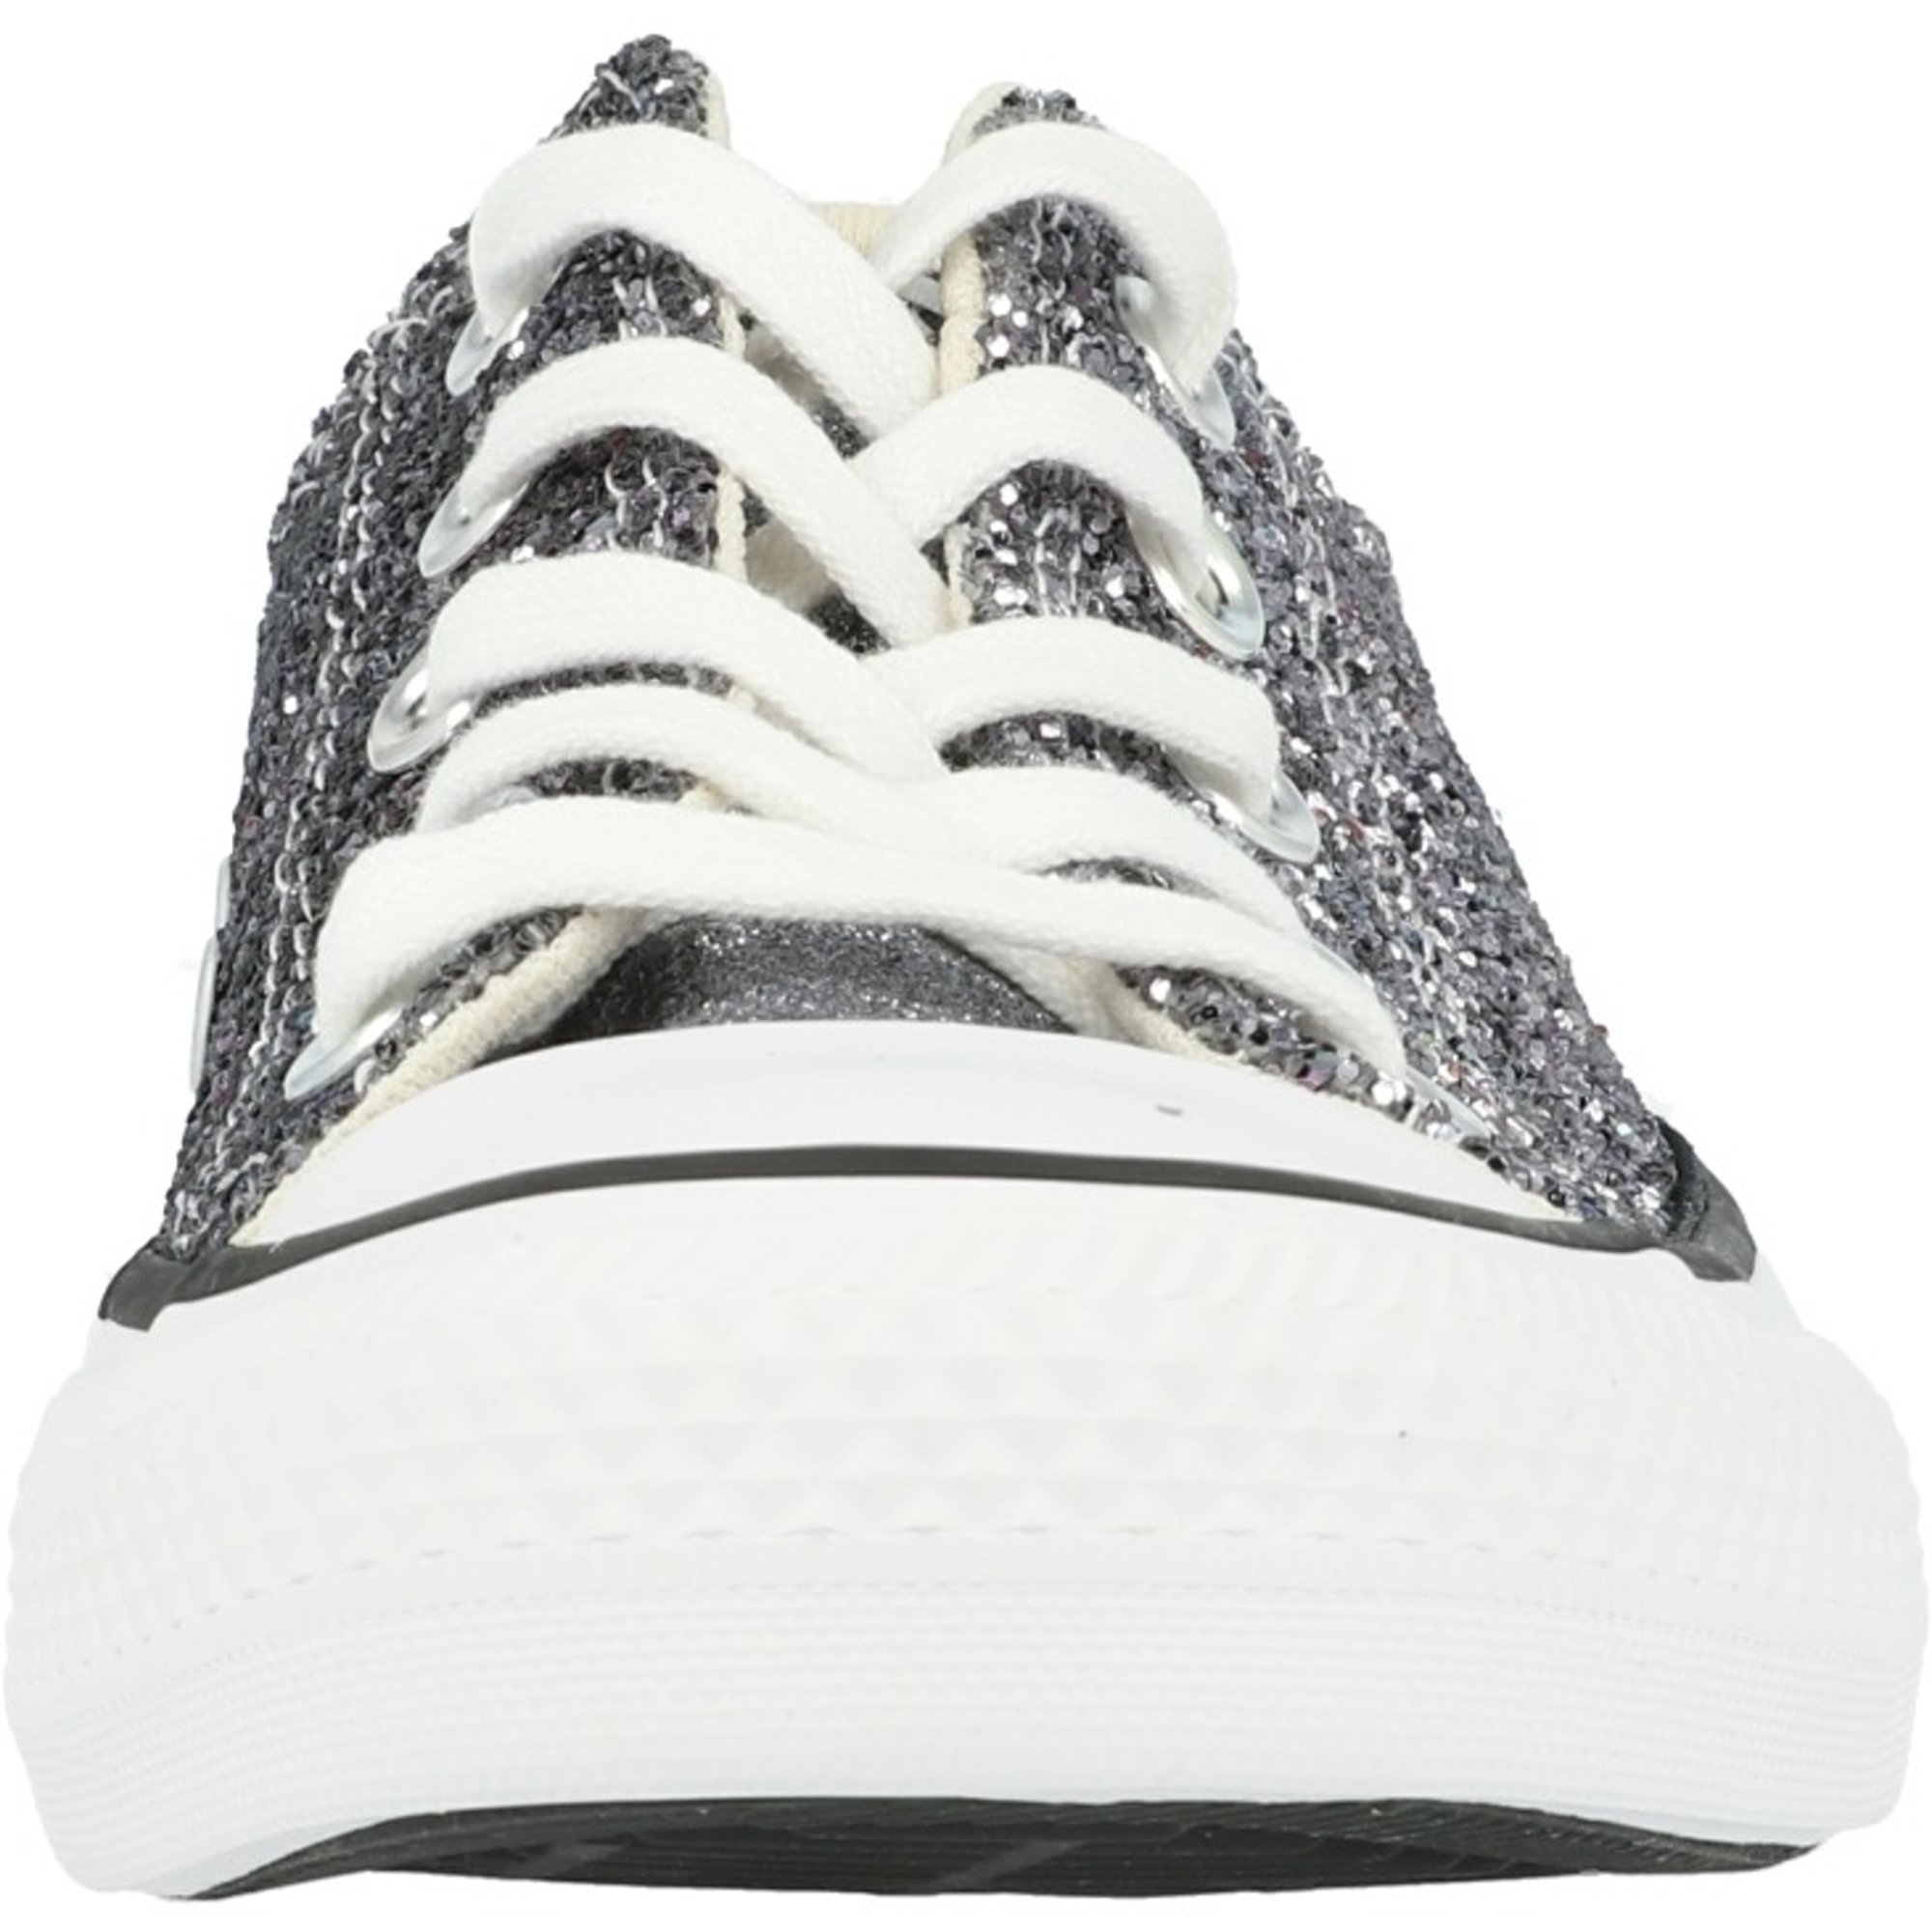 Converse Chuck Taylor All Star Glitter Ox Silver/Black Synthetic